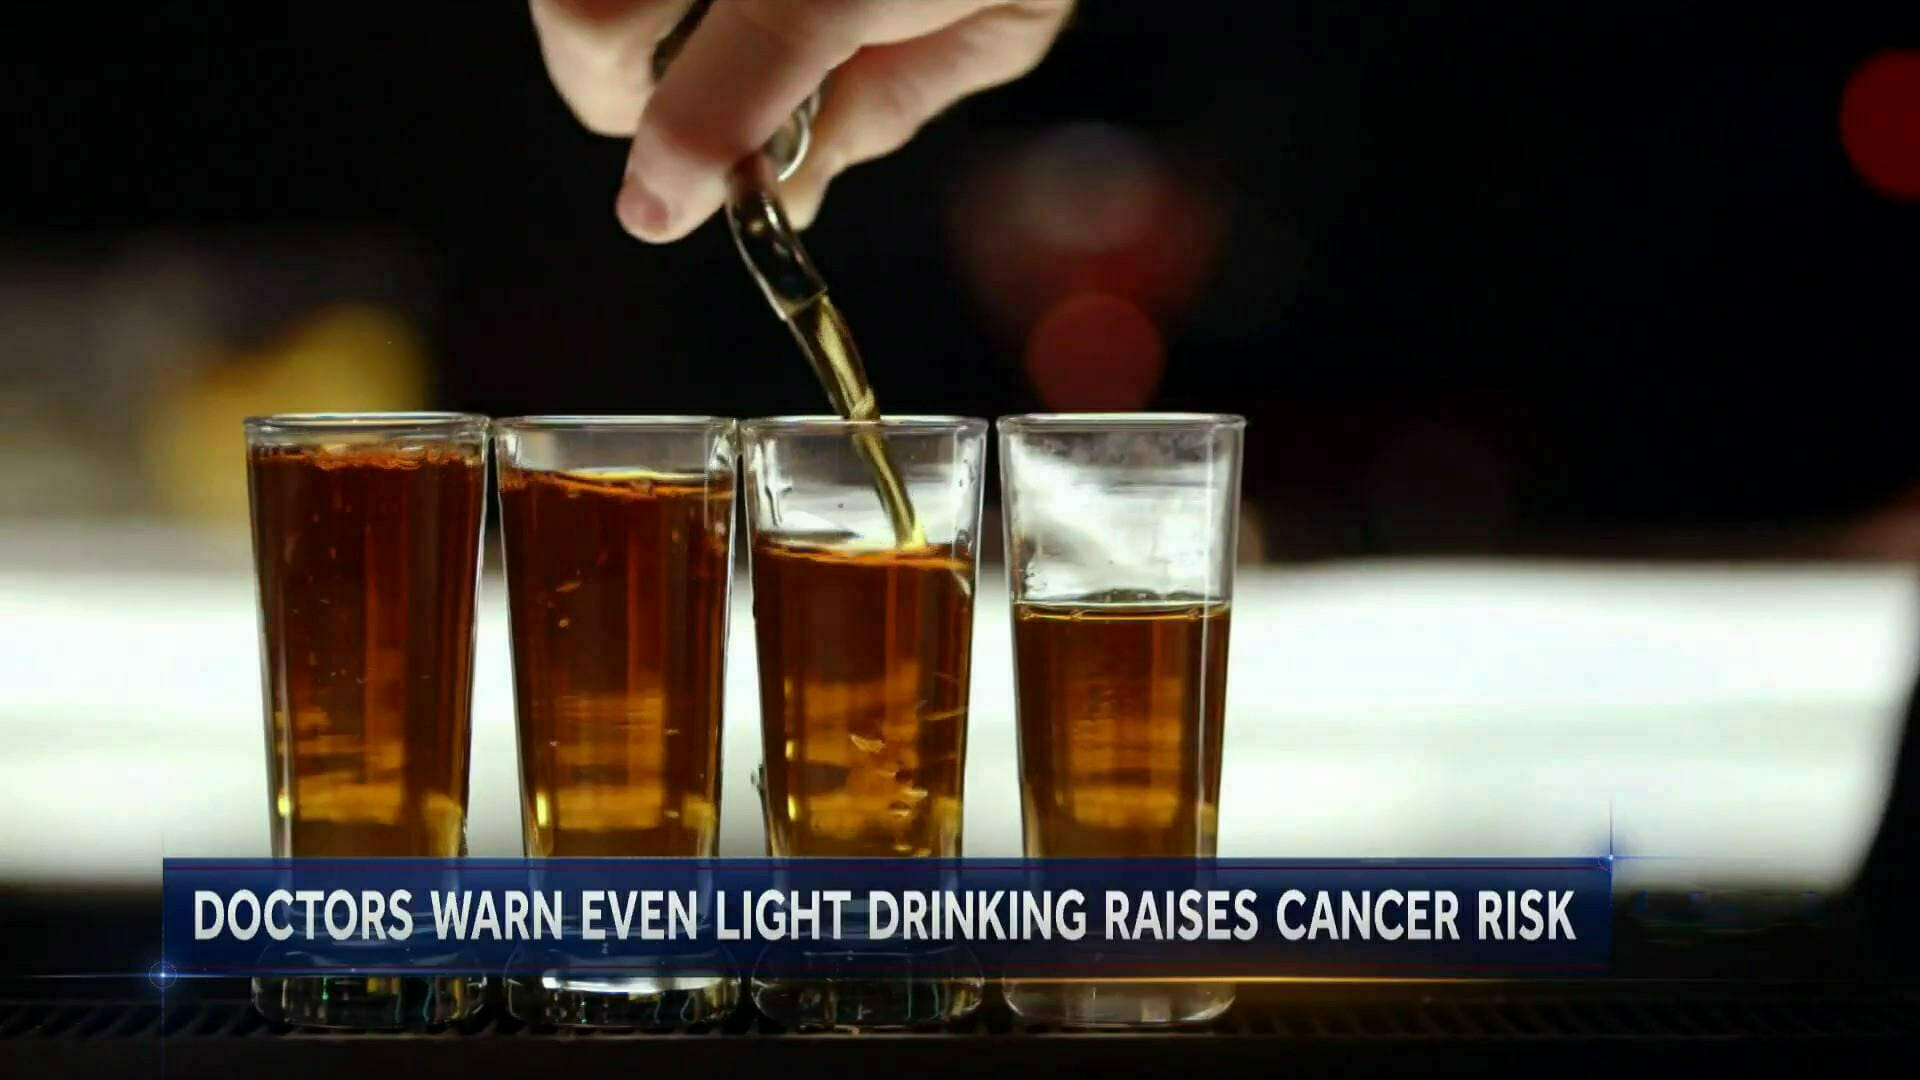 alcohol can lead to disease and cancer